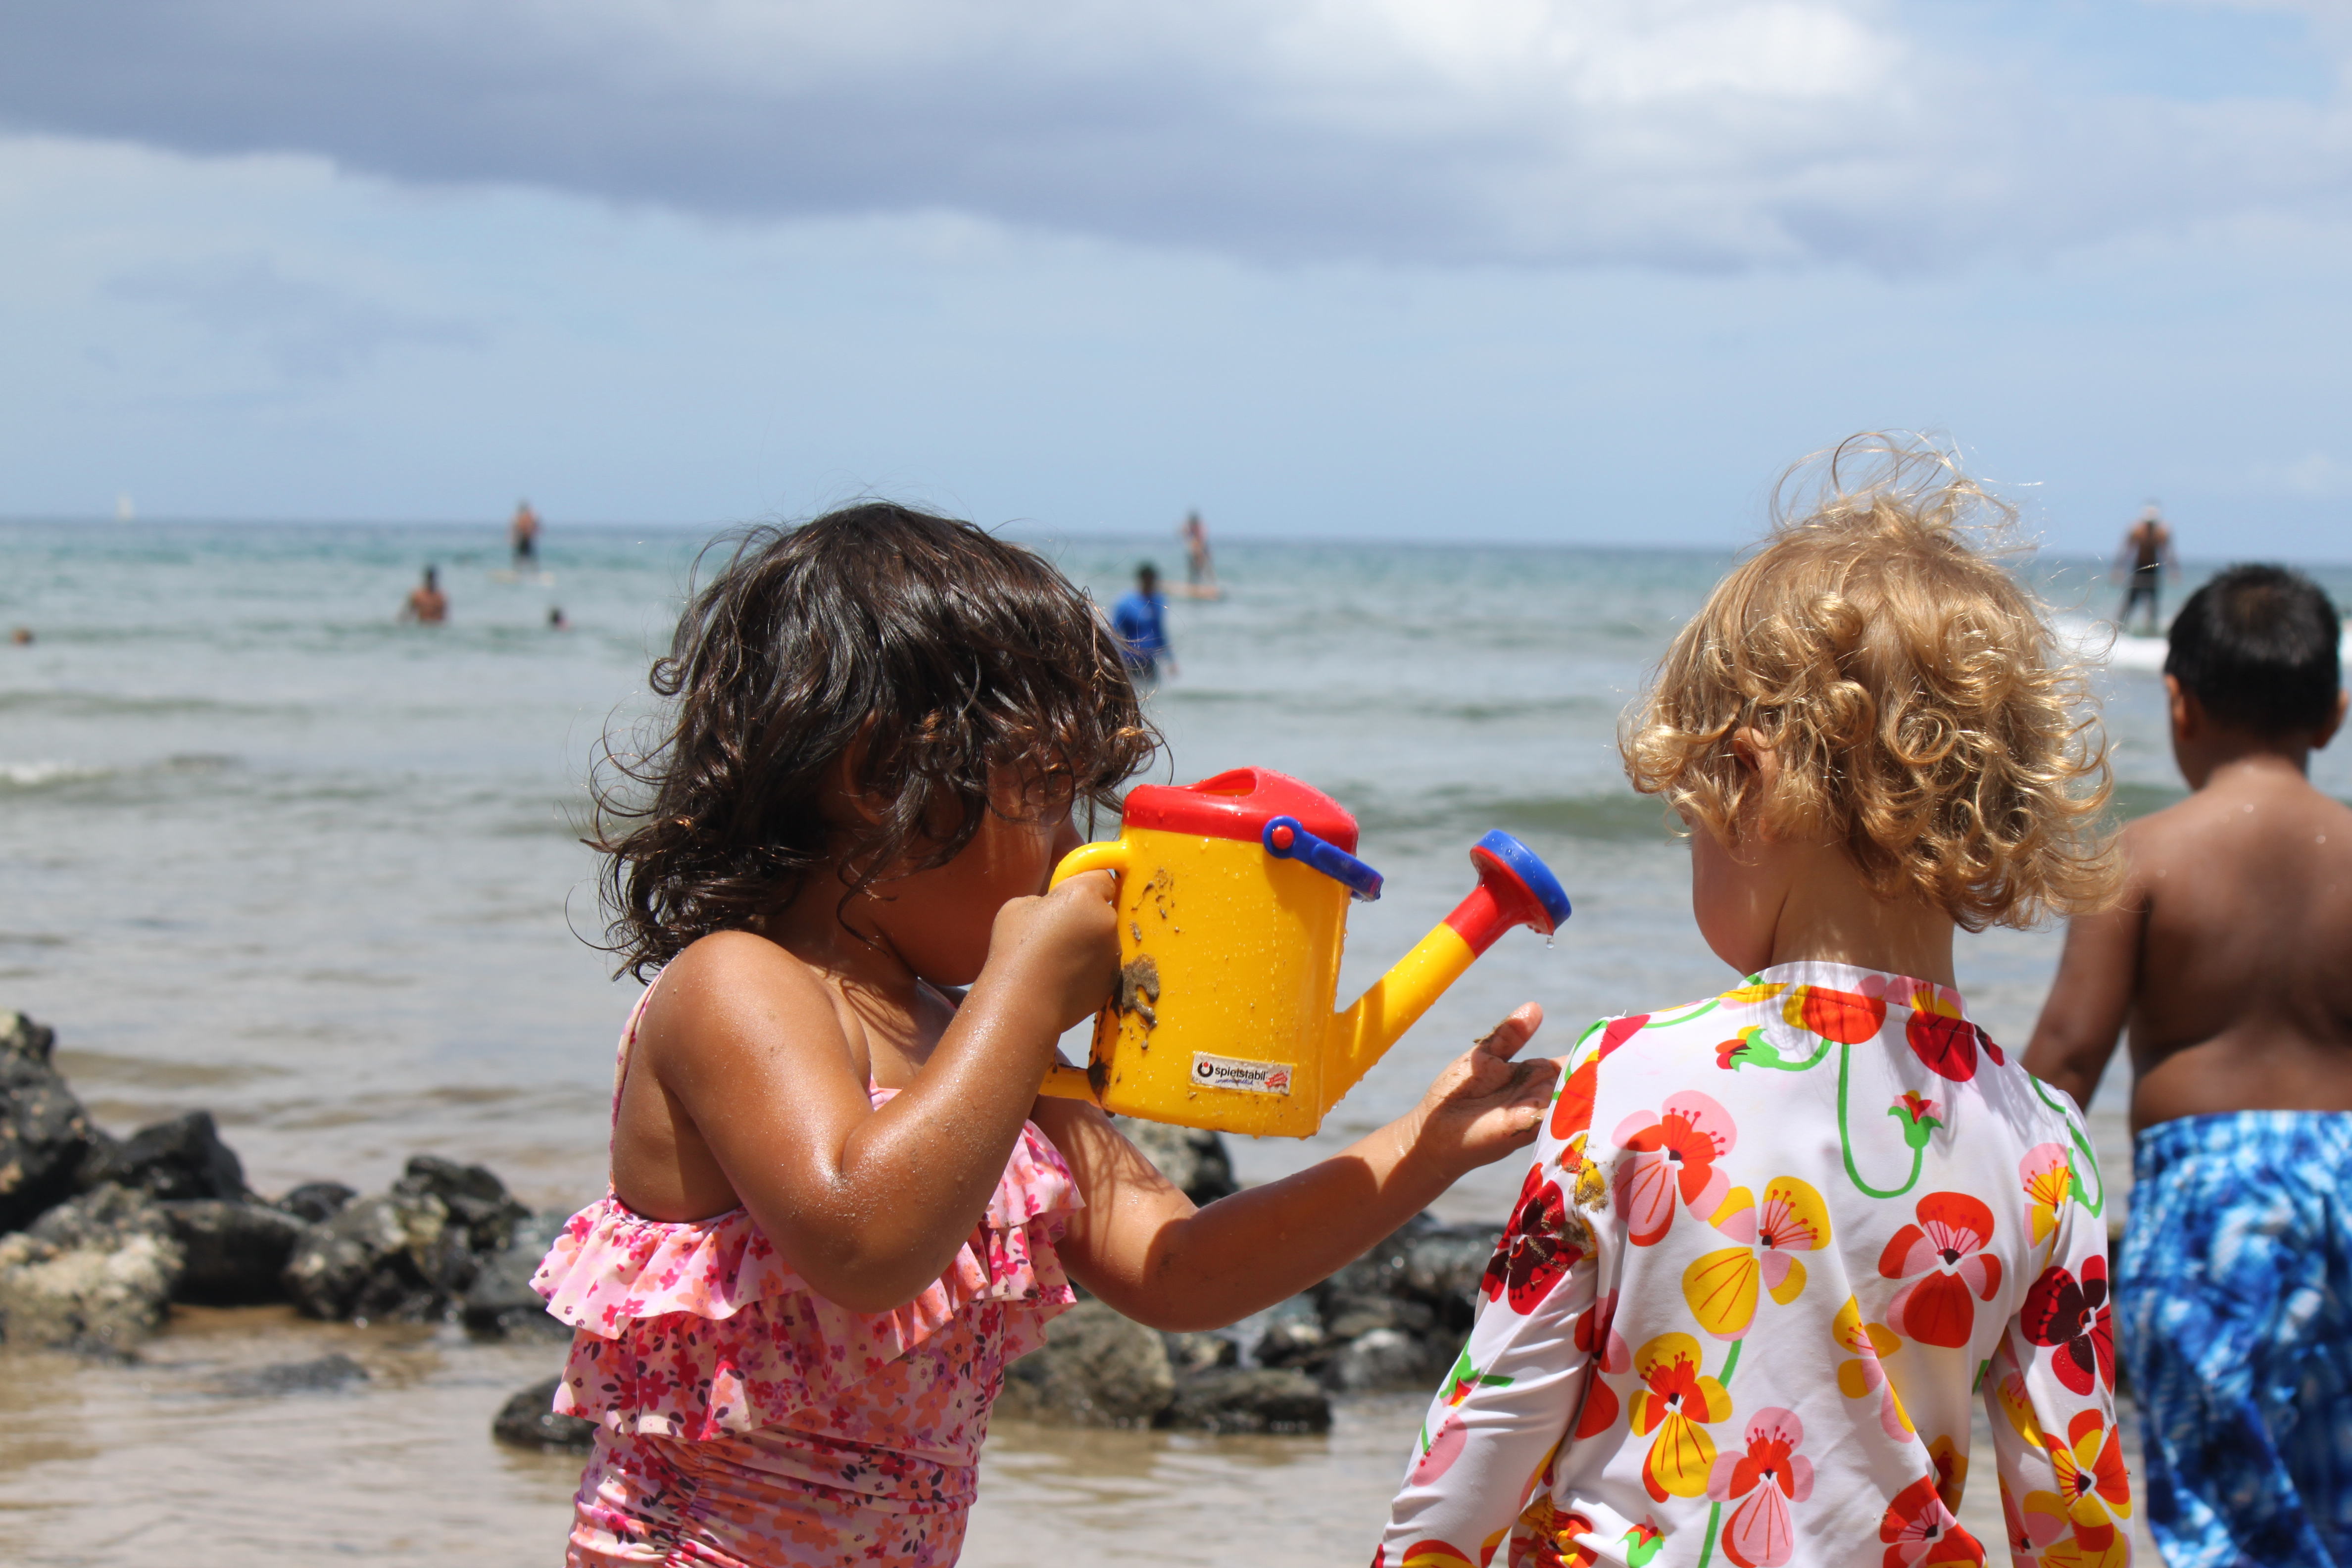 The Cove in Kihie girls watering the sand.